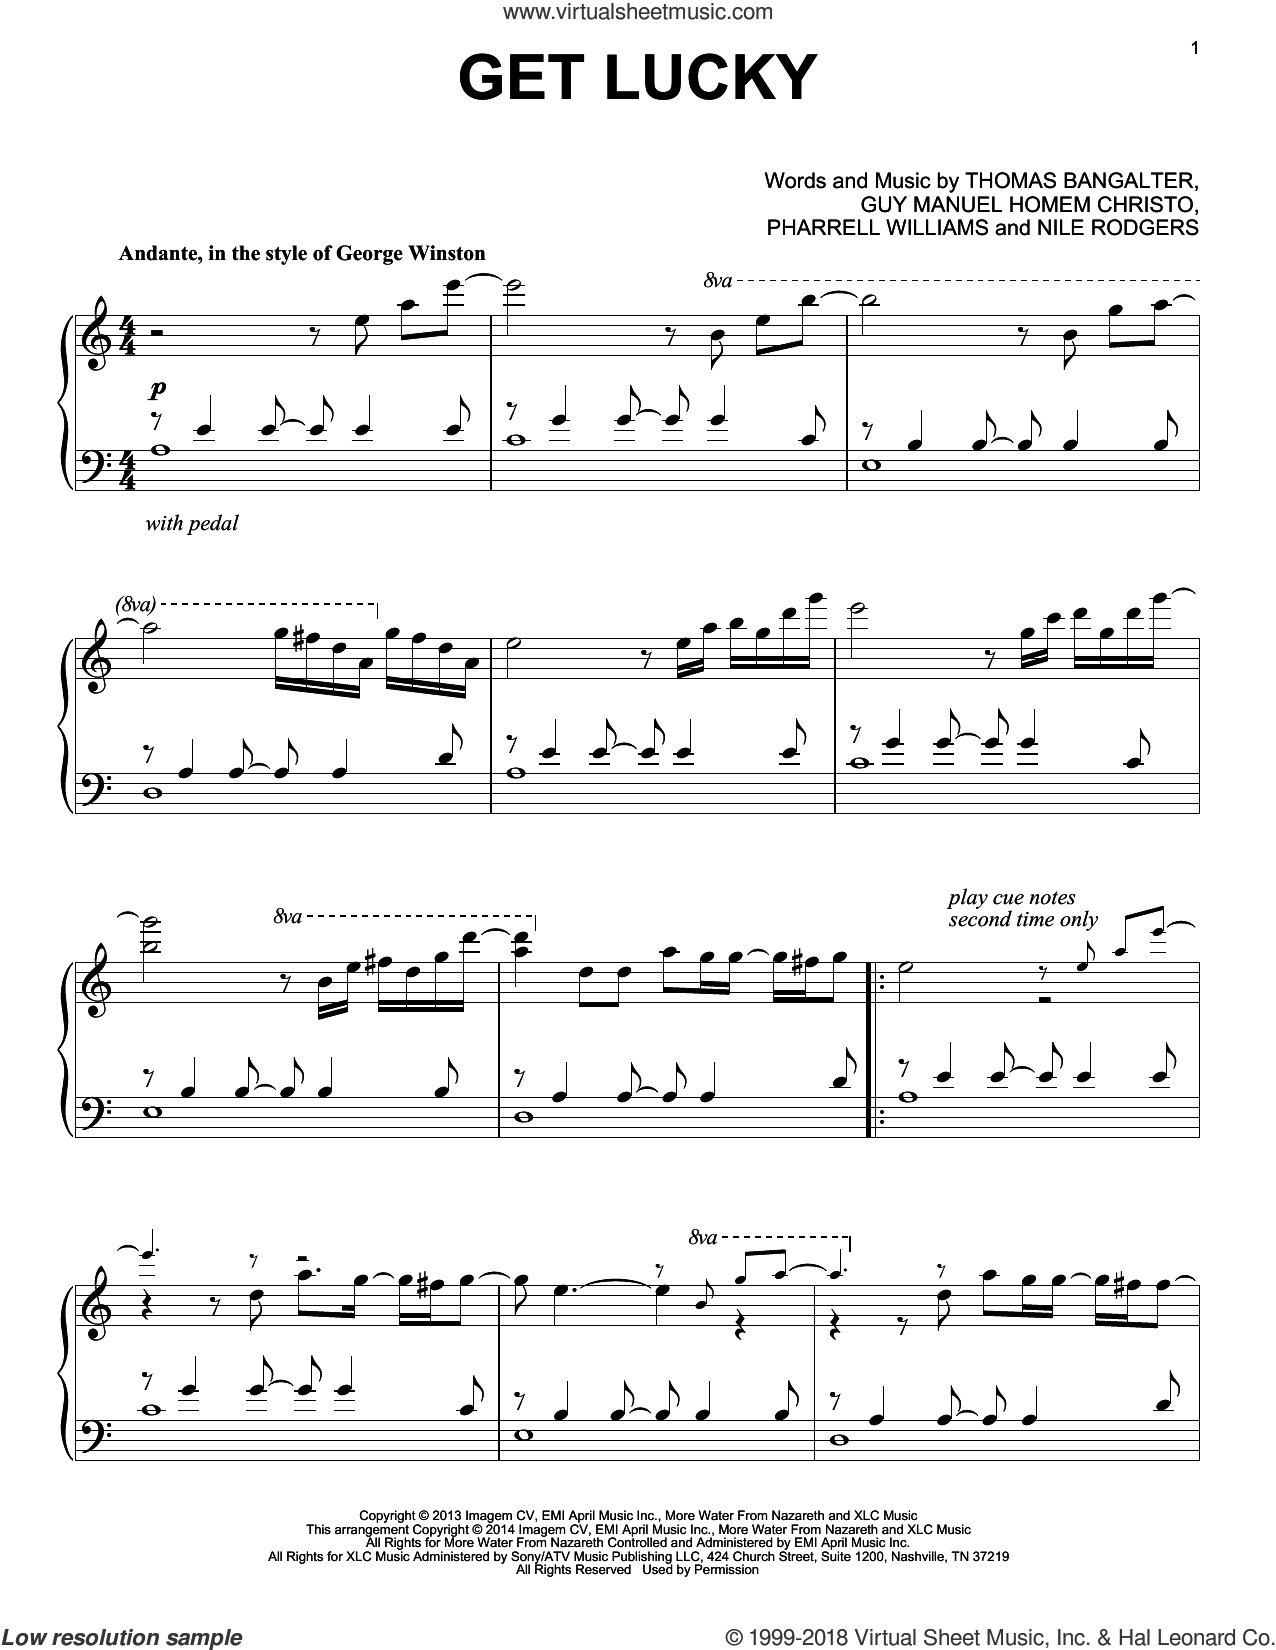 Get Lucky sheet music for piano solo by Daft Punk Featuring Pharrell Williams, Guy Manuel Homem Christo, Nile Rodgers, Pharrell Williams and Thomas Bangalter, intermediate skill level